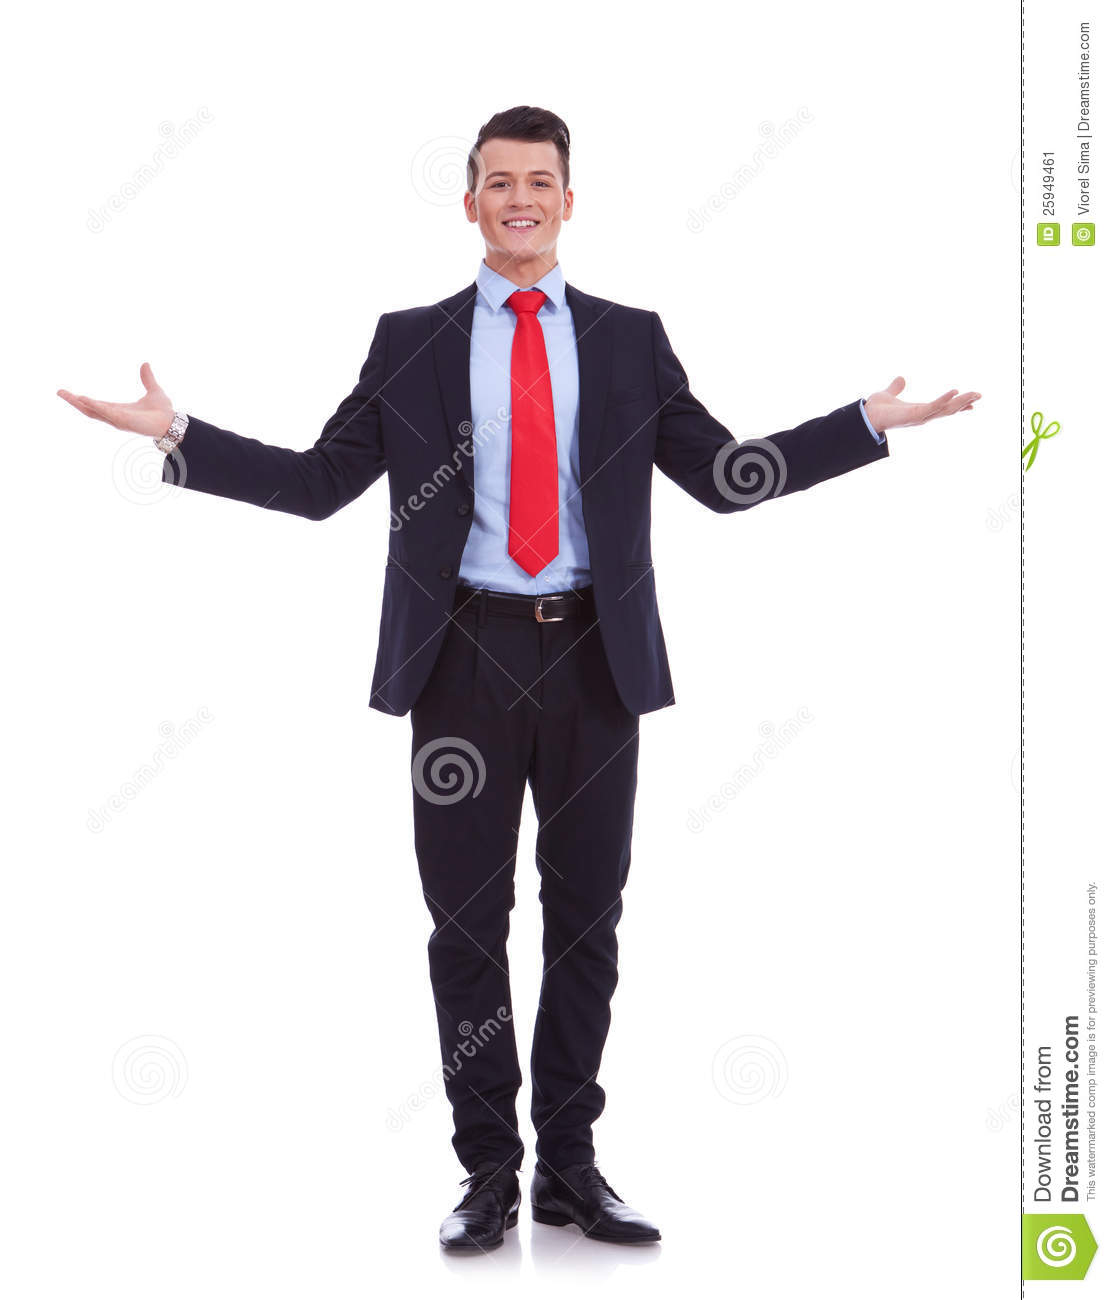 Business Man With Open Arms Stock Image - Image: 25949461 | 1111 x 1300 jpeg 71kB